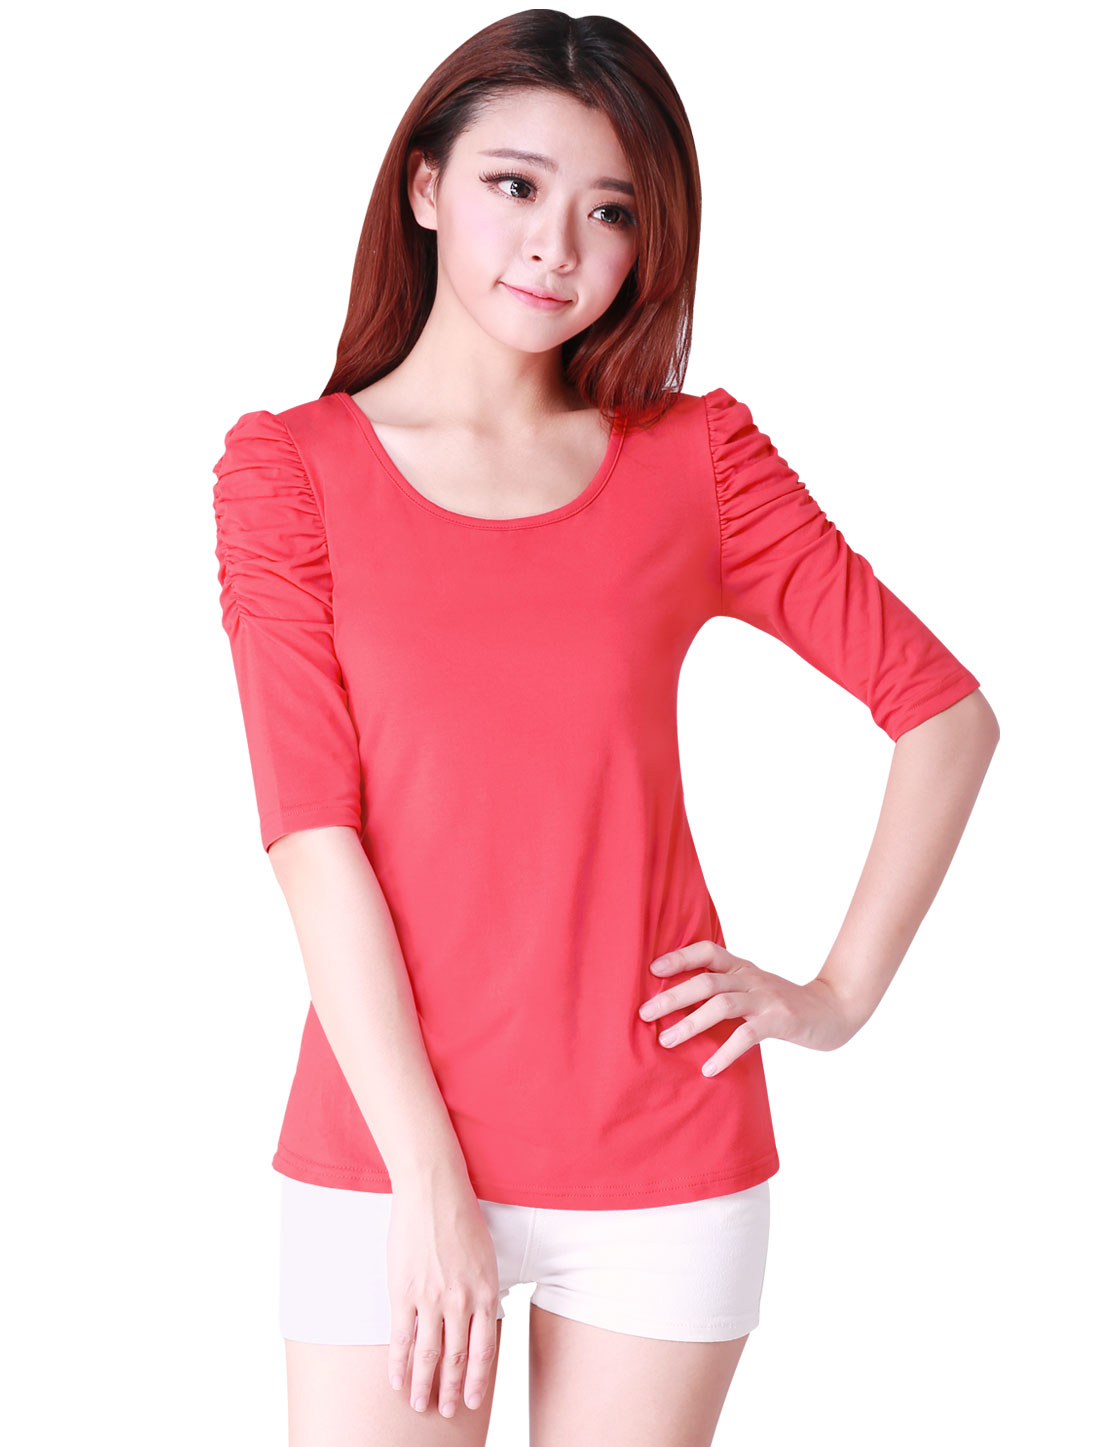 Ladies NEW Style Scoop Neck 1/2 Sleeve Watermelon Red Tee Shirt M